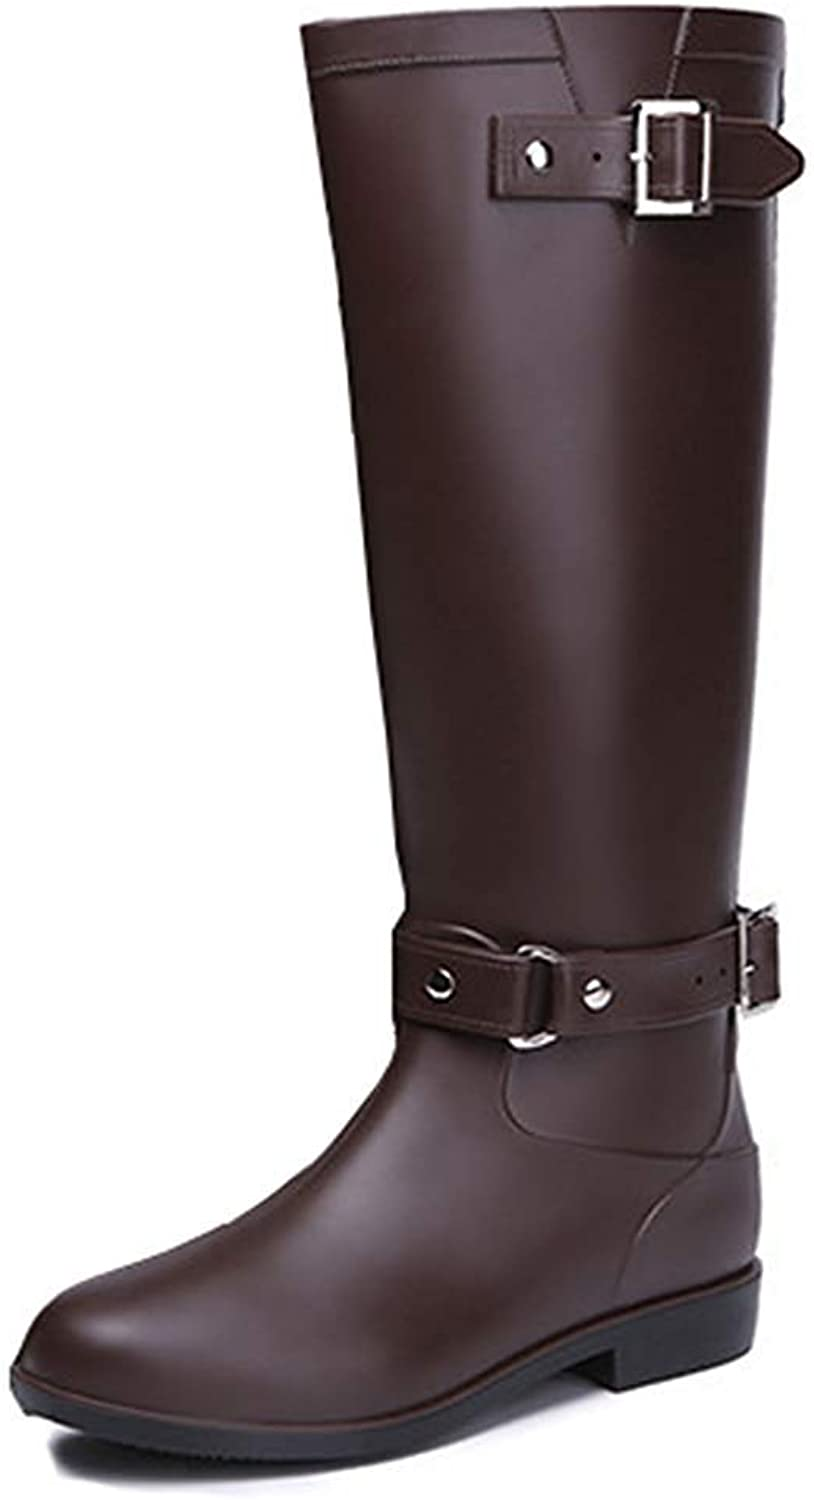 Women's Buckle Strap Round Toe Waterproof Non Slip Chunky Low Heel Zip Up Knee High Boots Zipper